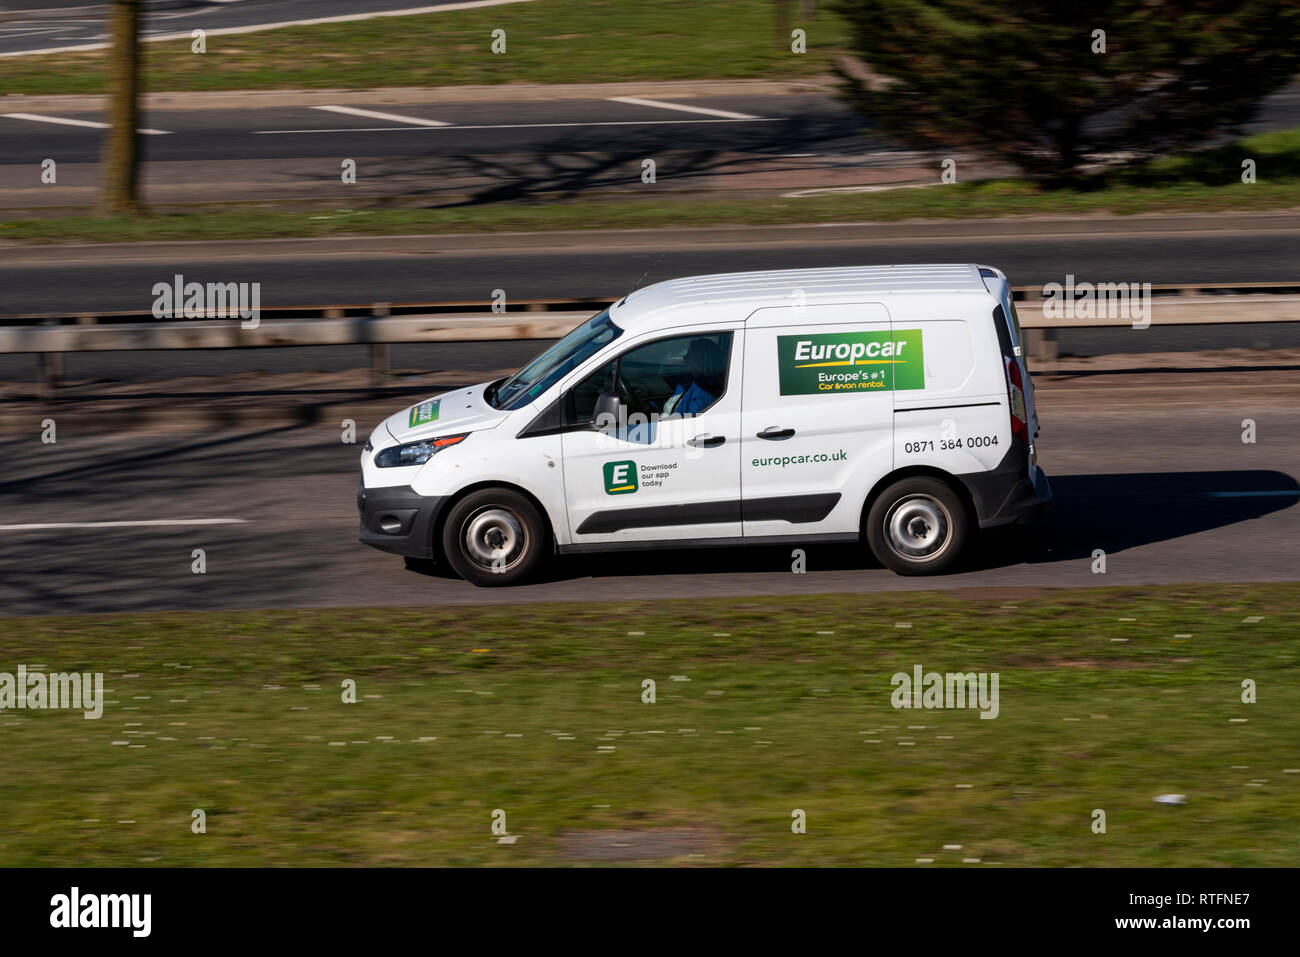 167a0df13c8f36 Europcar white van driving on the road. Car and van rental